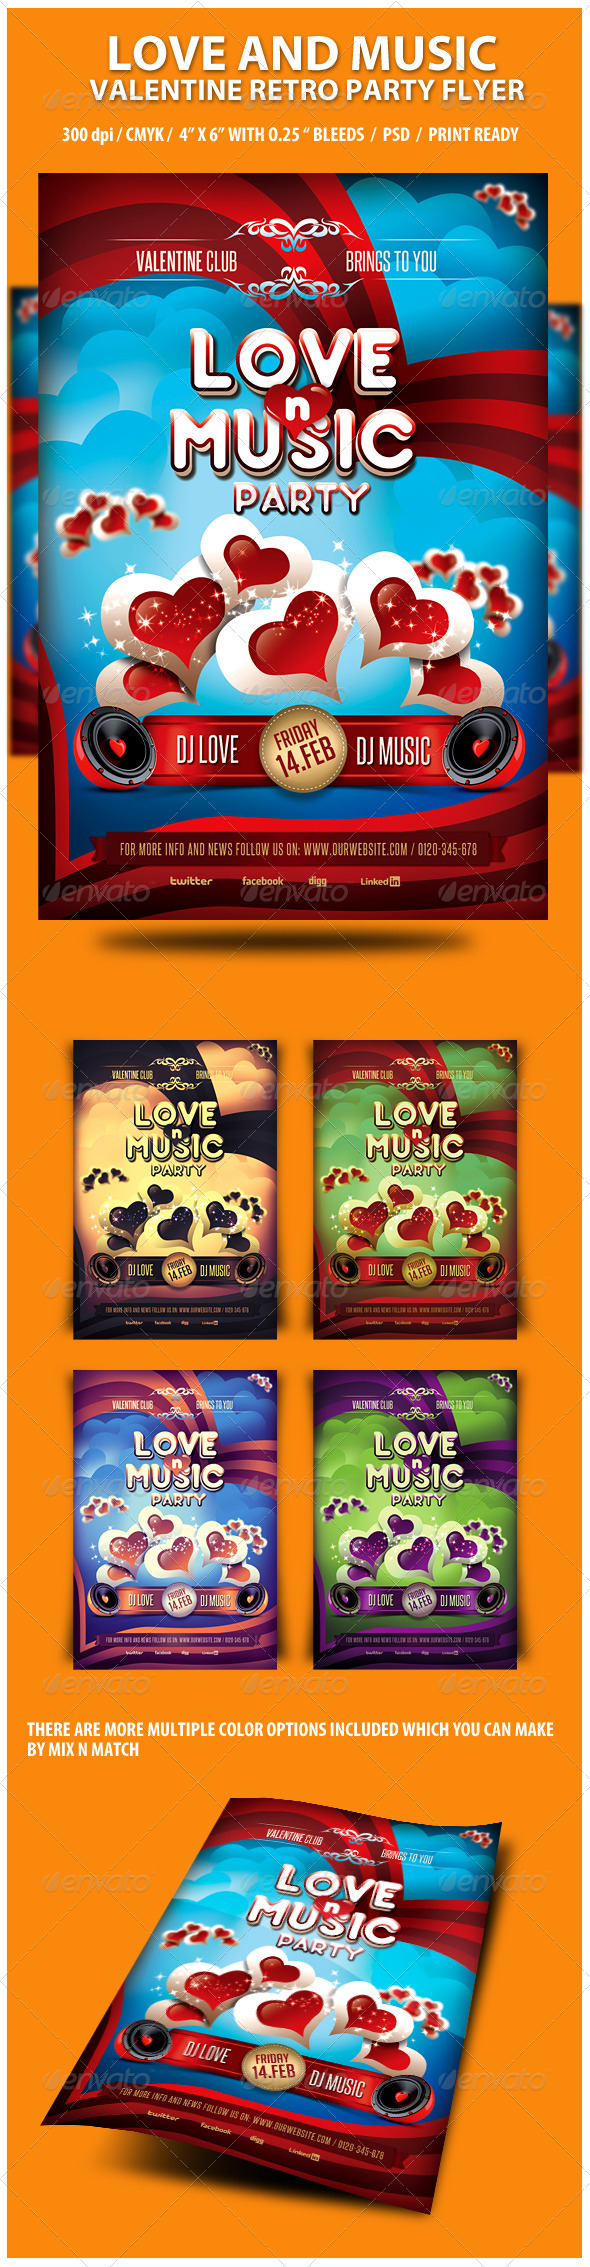 GraphicRiver Love and Music Valentine Retro Party Flyer 3767883